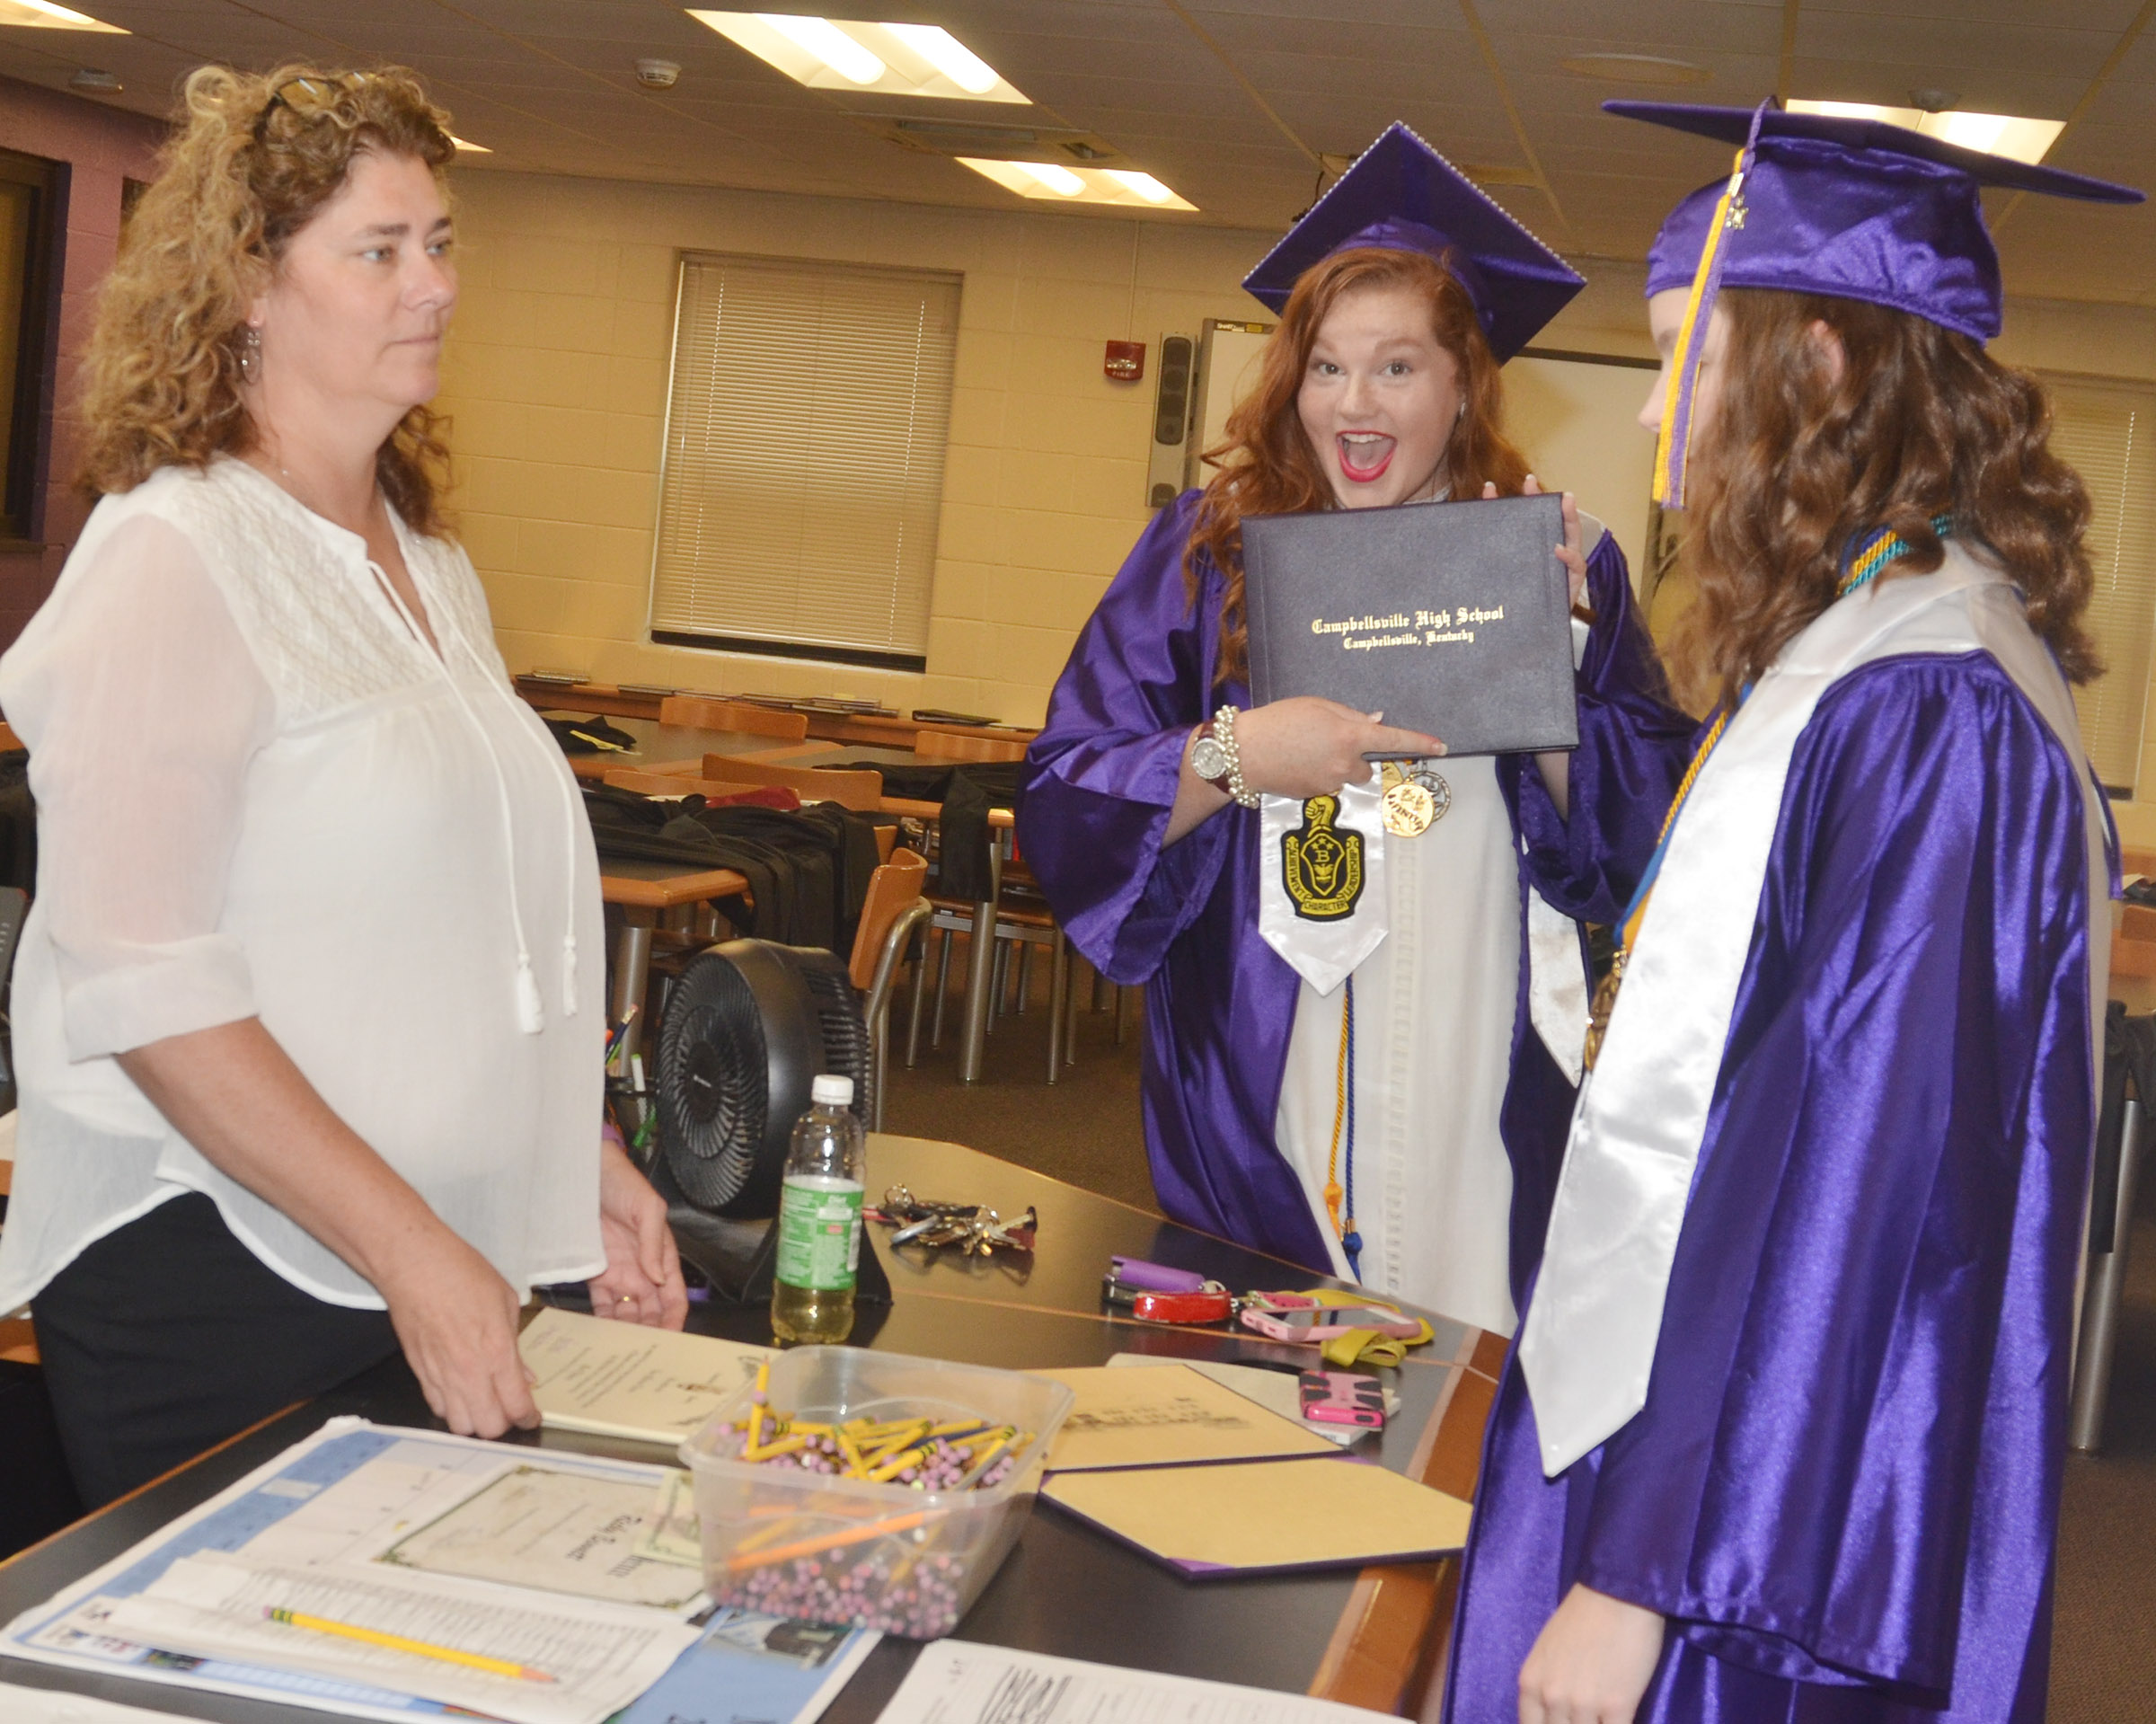 CHS graduate Mallory Haley poses for a photo with her diploma as teacher Tammy Wilson talks with graduate Blair Lamb.